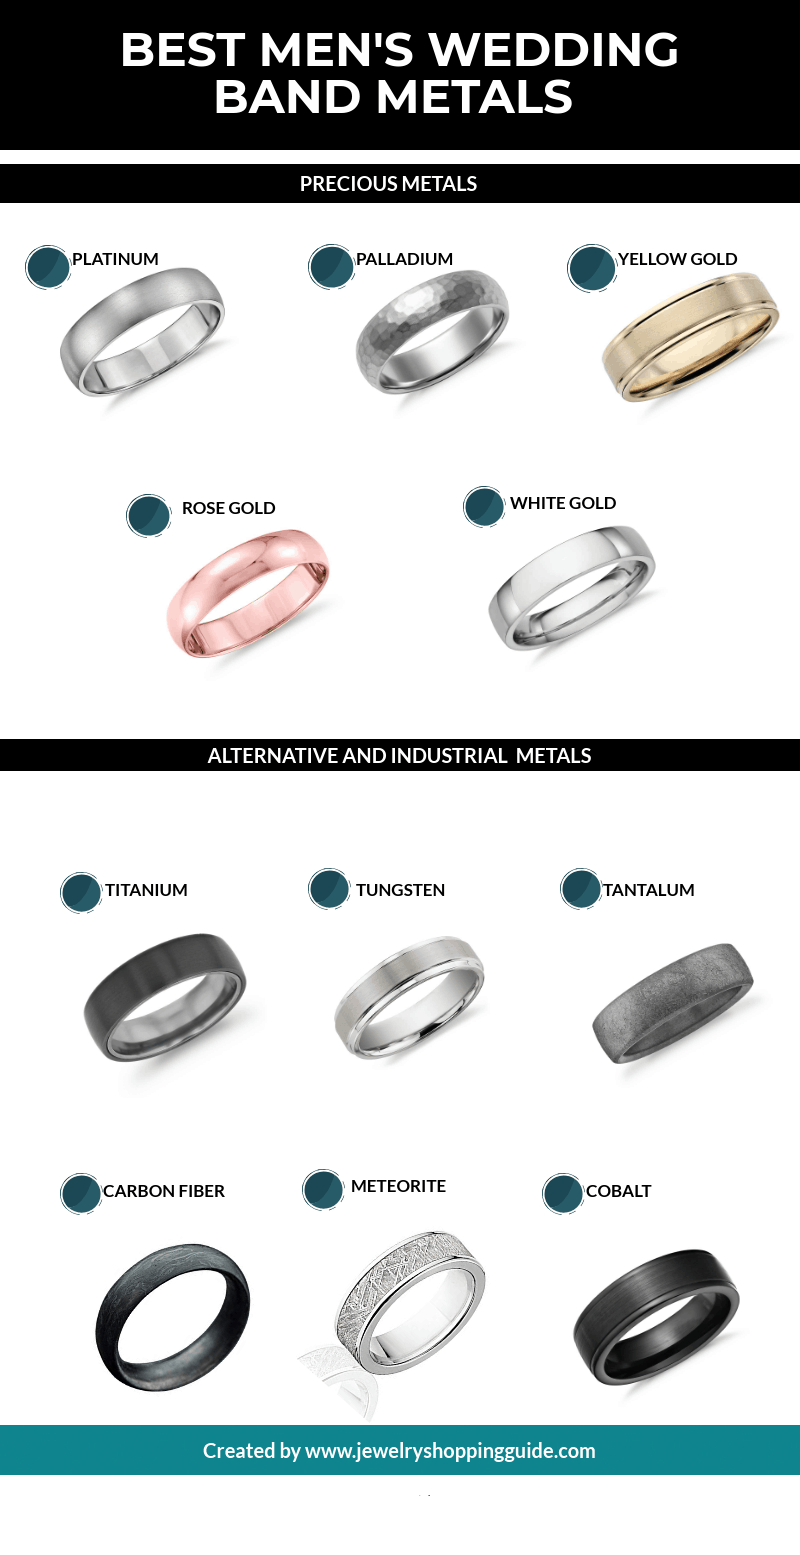 e6779a674deed Best Metal for Men's Wedding Bands Revealed – Jewelry Guide